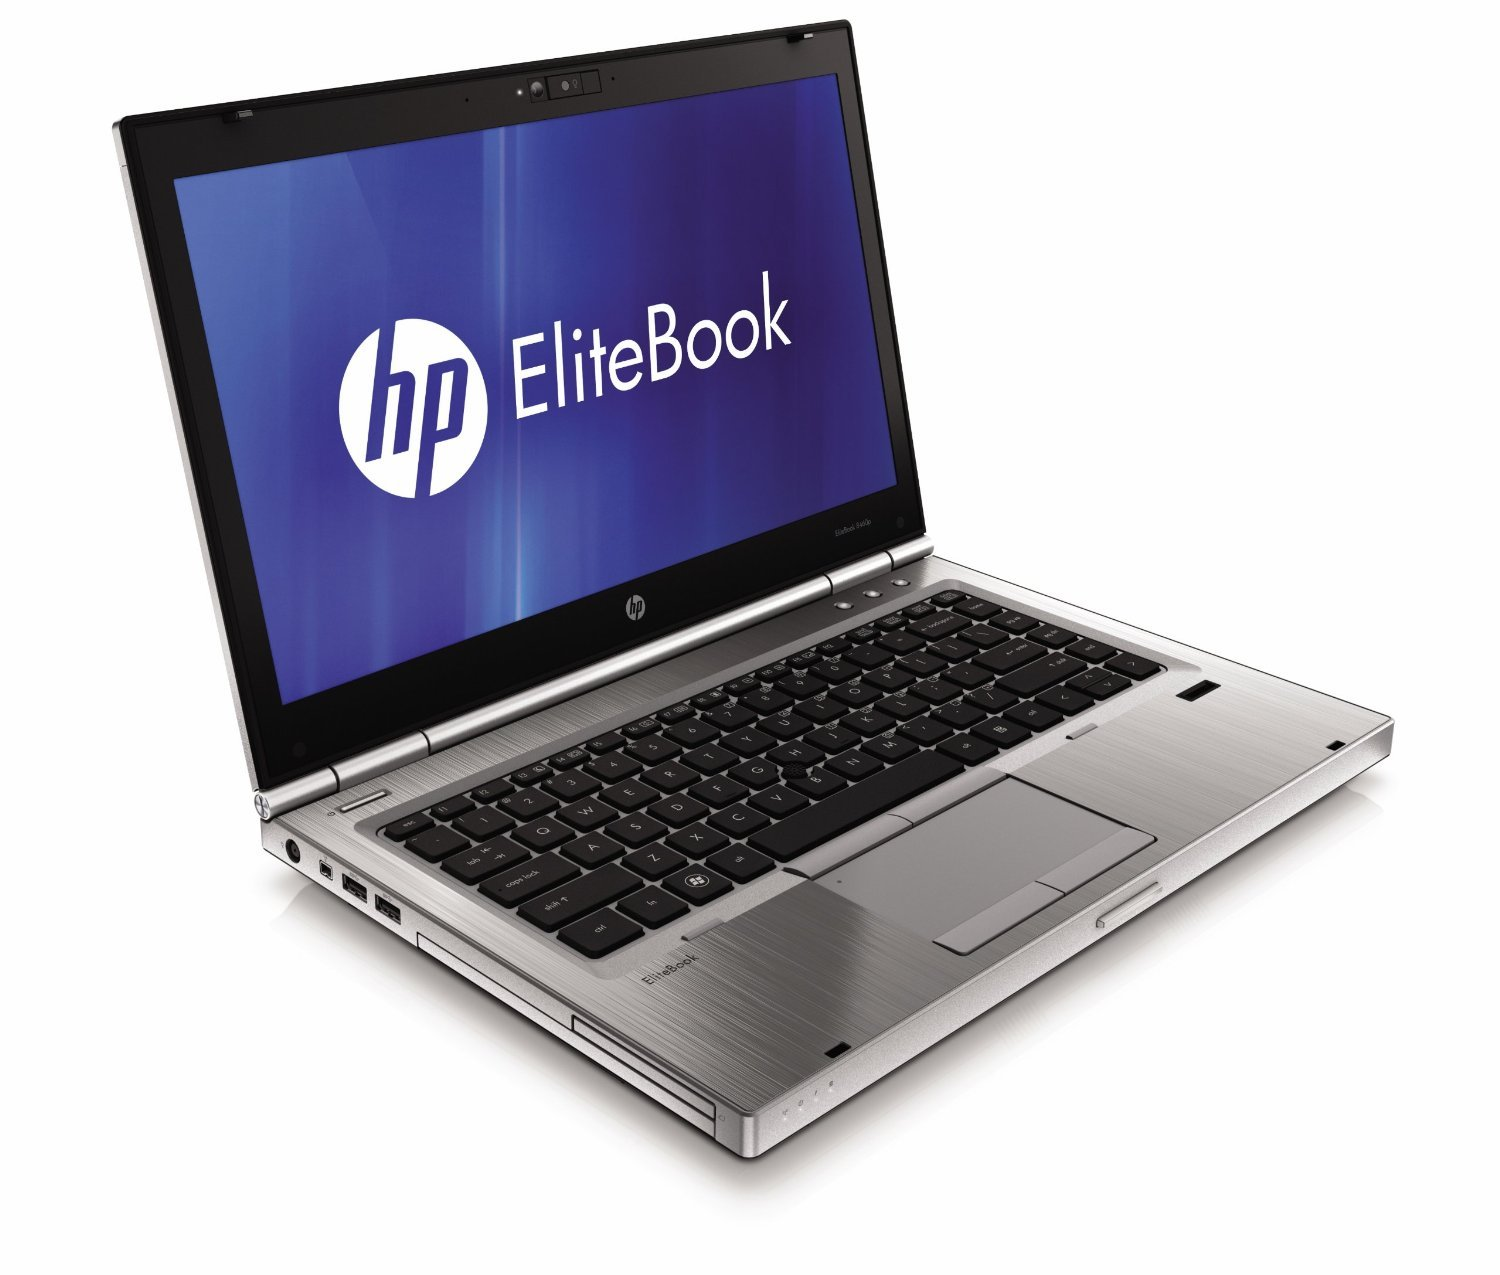 Amazon.com: HP EliteBook 8460p Core i5 2520M 2.5GHz 8GB 500GB DVDRW WINDOWS 10 Professional 64 Bit: Computers & Accessories